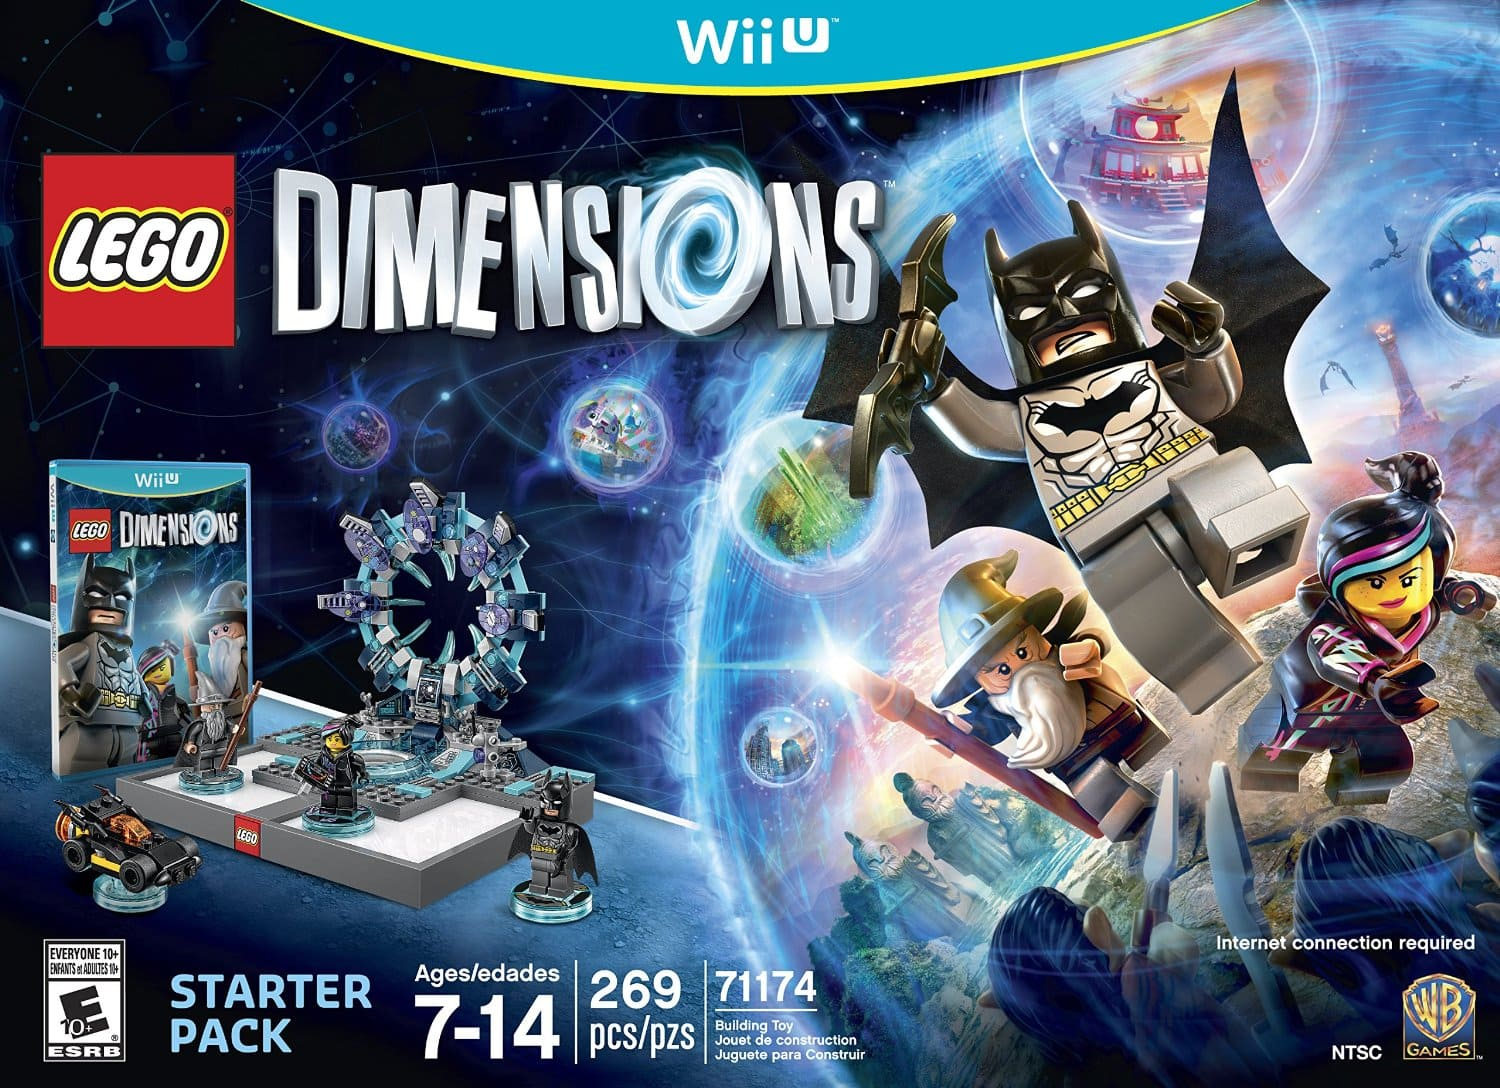 Lego Dimensions Starter Pack - Amazon Lightning Deal - All Platforms $63.99 - LIVE NOW